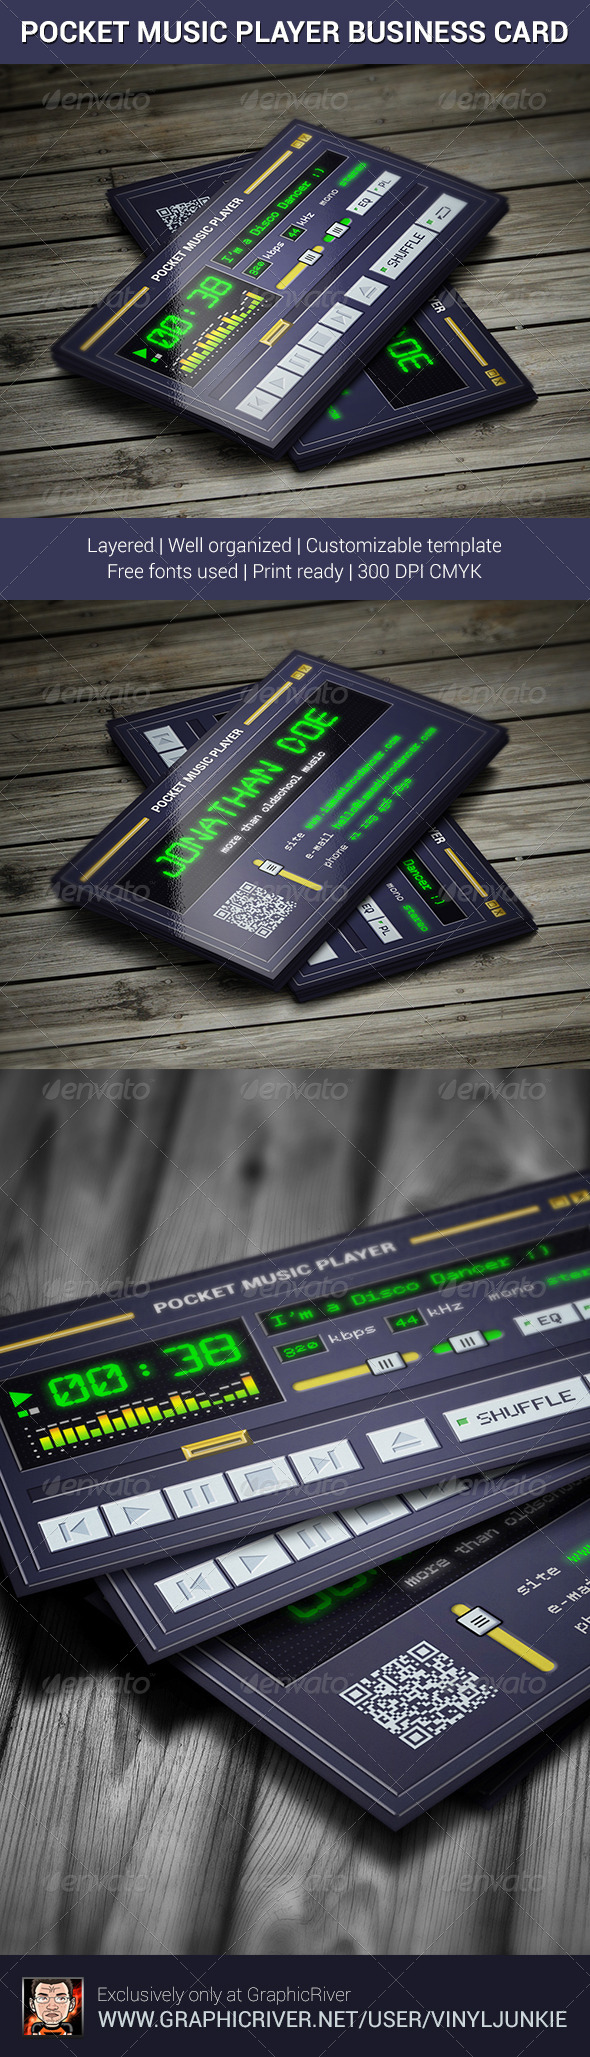 GraphicRiver Pocket Music Player Business Card 6450248